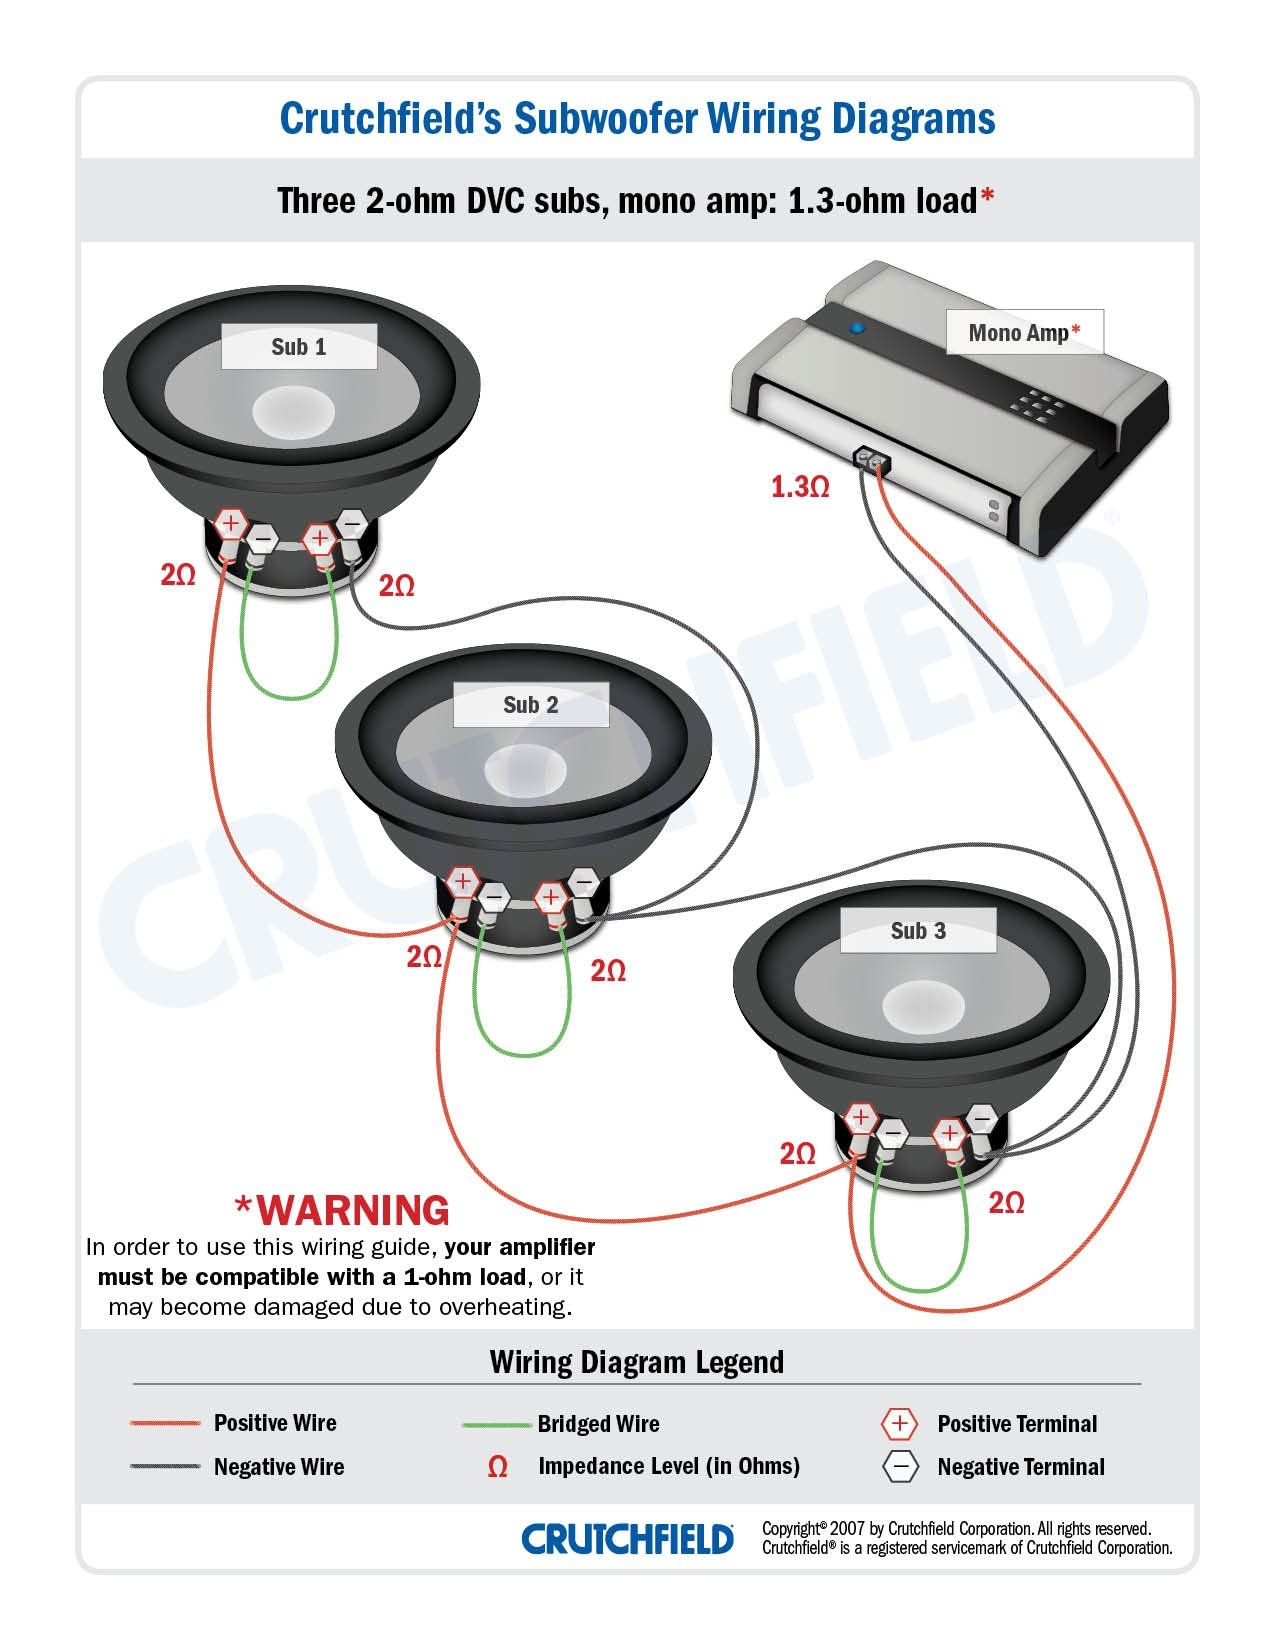 3 DVC 2 ohm mono low imp how to match subwoofers and amplifiers boston subsat 6 wiring diagram at cita.asia